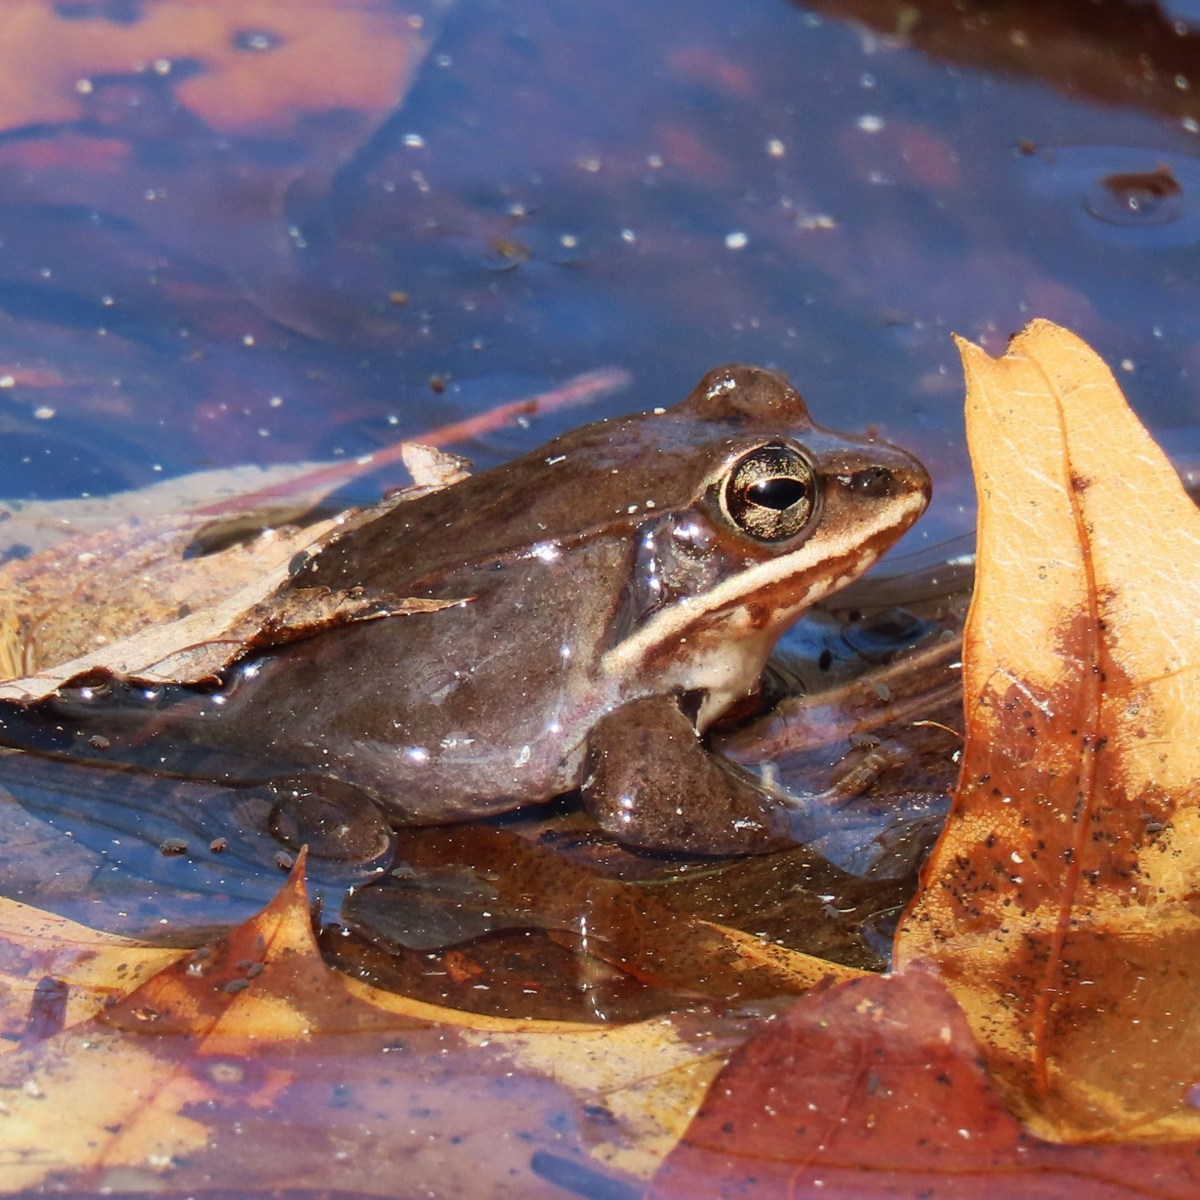 A wood frog emerges from leaves in a pond